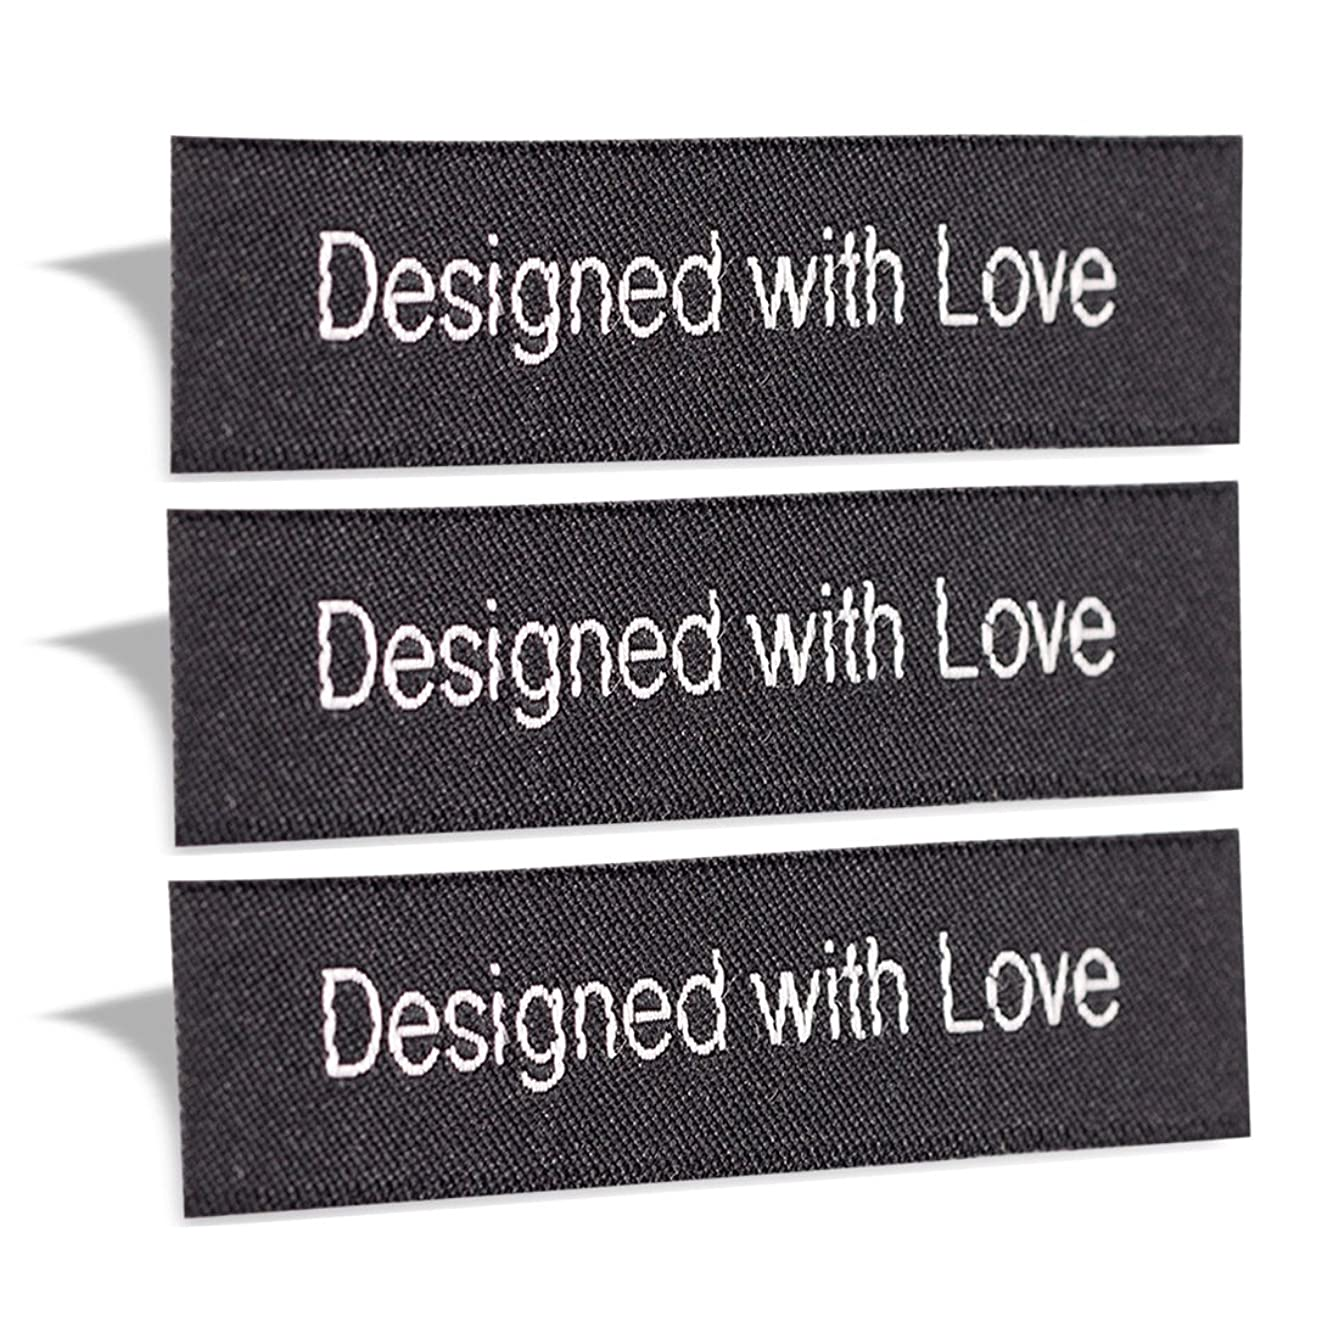 Wunderlabel Designed with Love Crafting Craft Art Fashion Woven Ribbon Ribbons Tag for Clothing Sewing Sew on Clothes Garment Fabric Material Embroidered Label Labels Tags, White on Black, 25 Labels vjfcqw260733